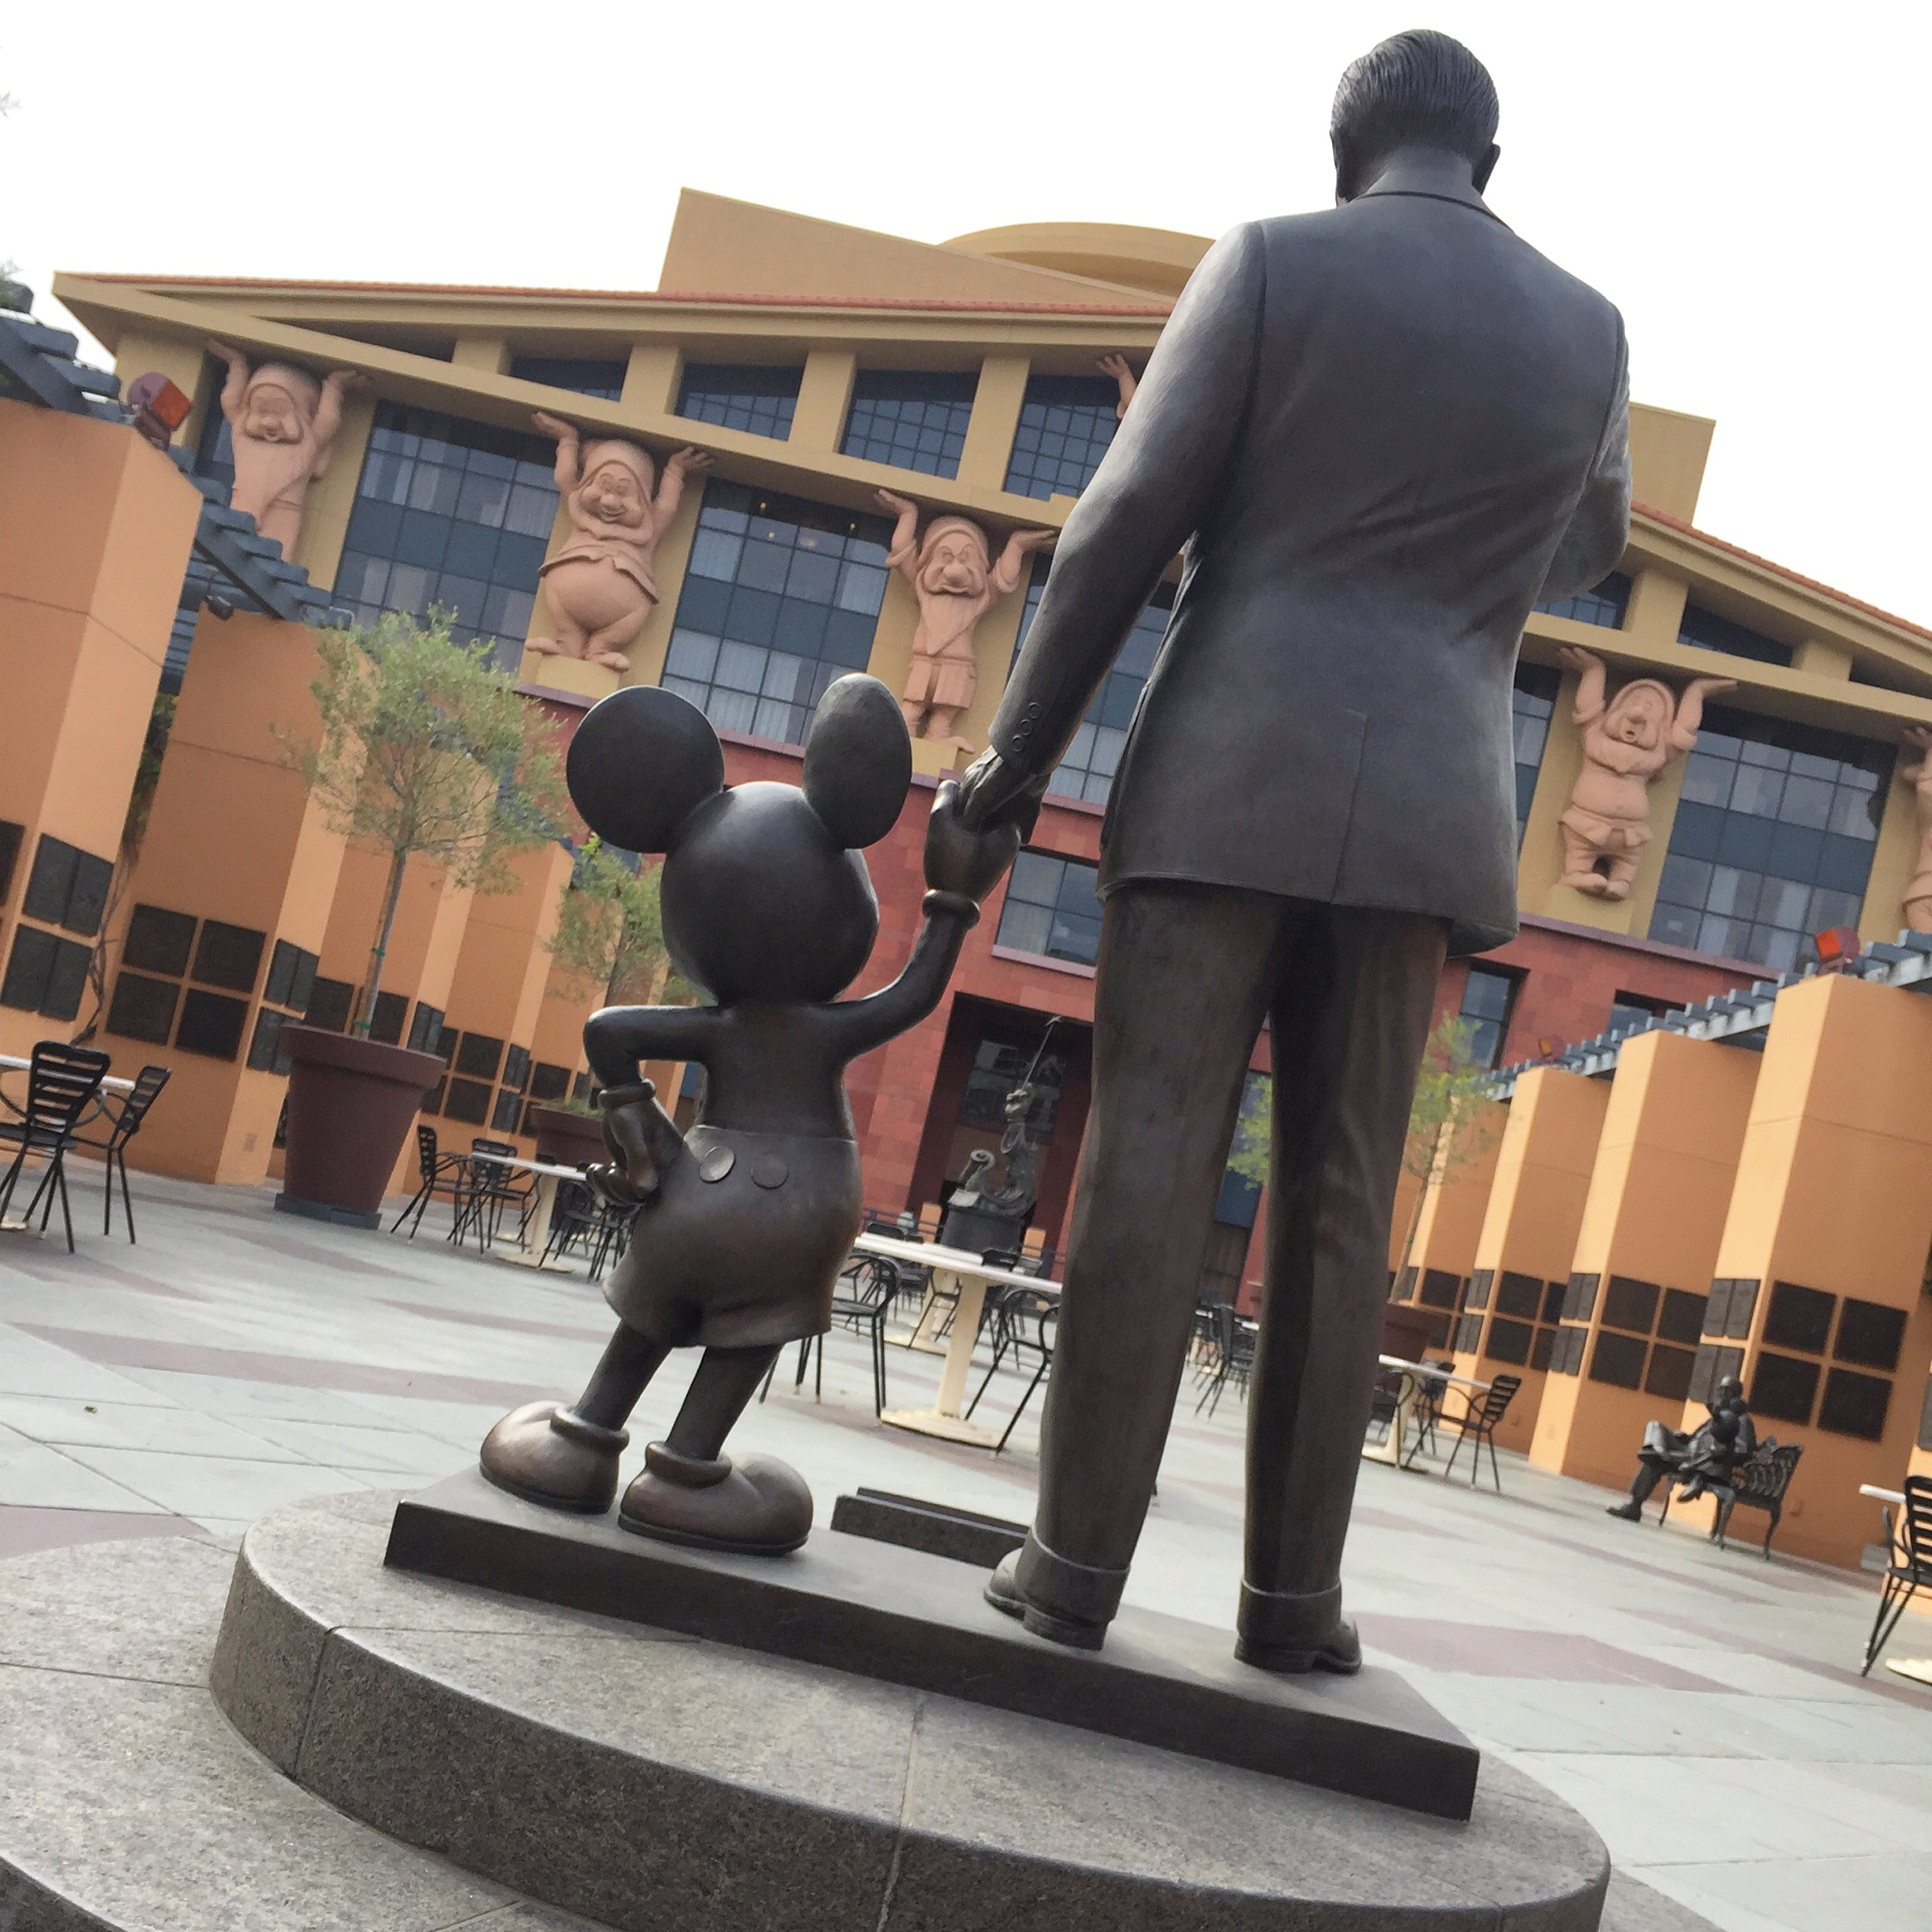 Legends Plaza at Walt Disney Studios. Photo: M.Darby